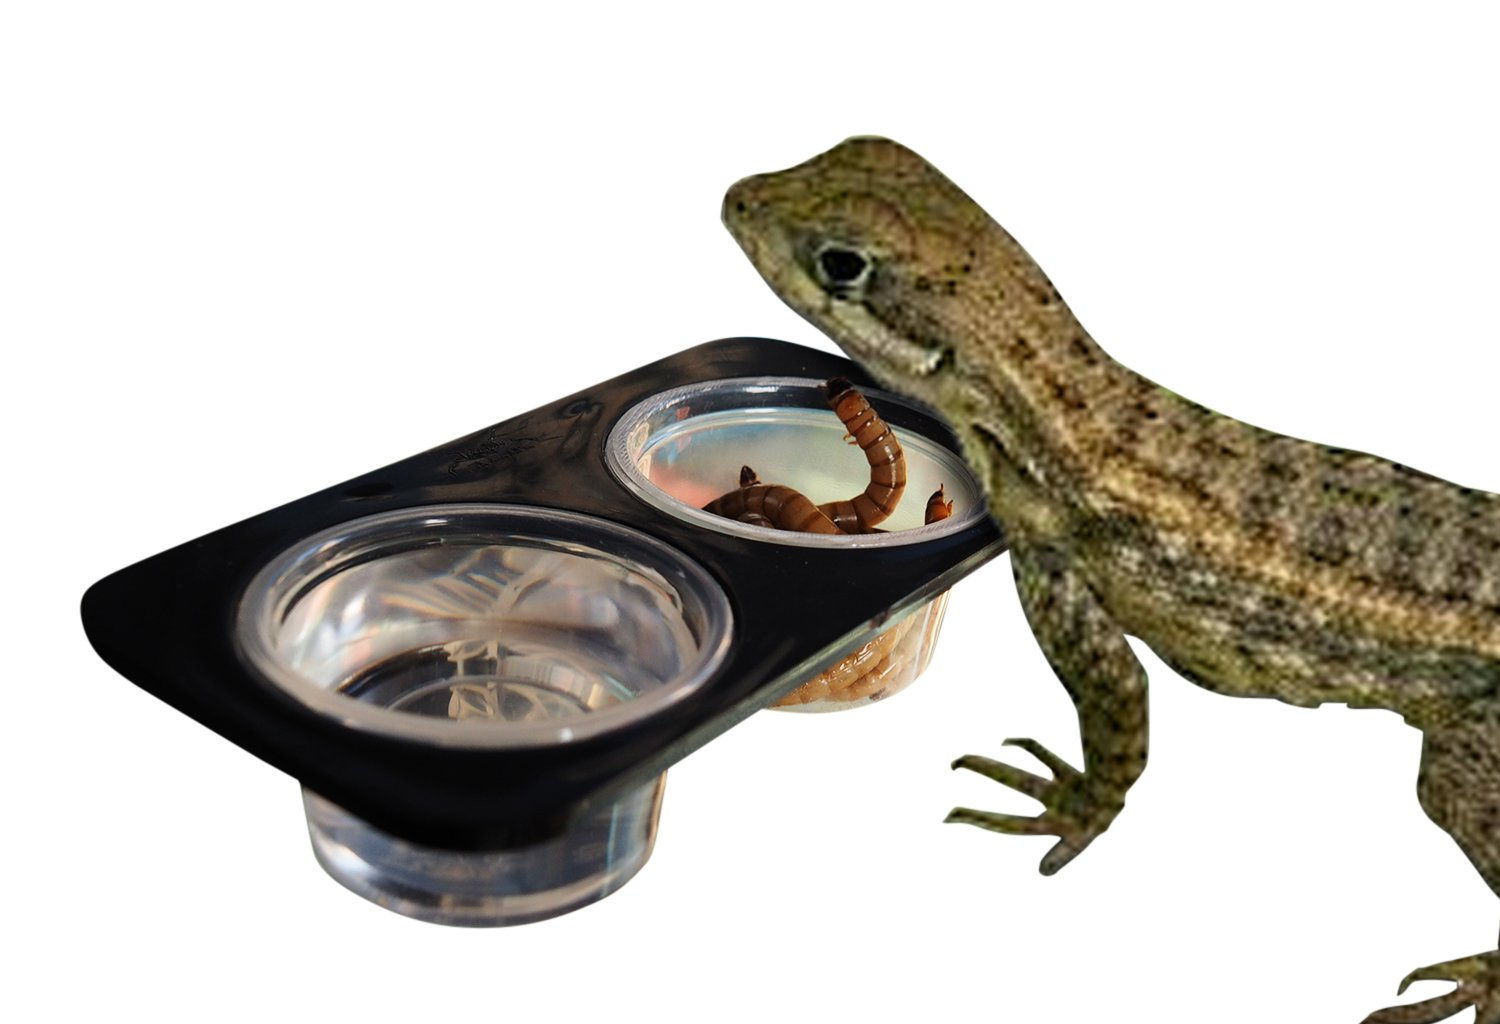 2 Bowls ABS Suction Cup Mini Worm Dish Reptile Gecko Food Bowl Ledge Feeder